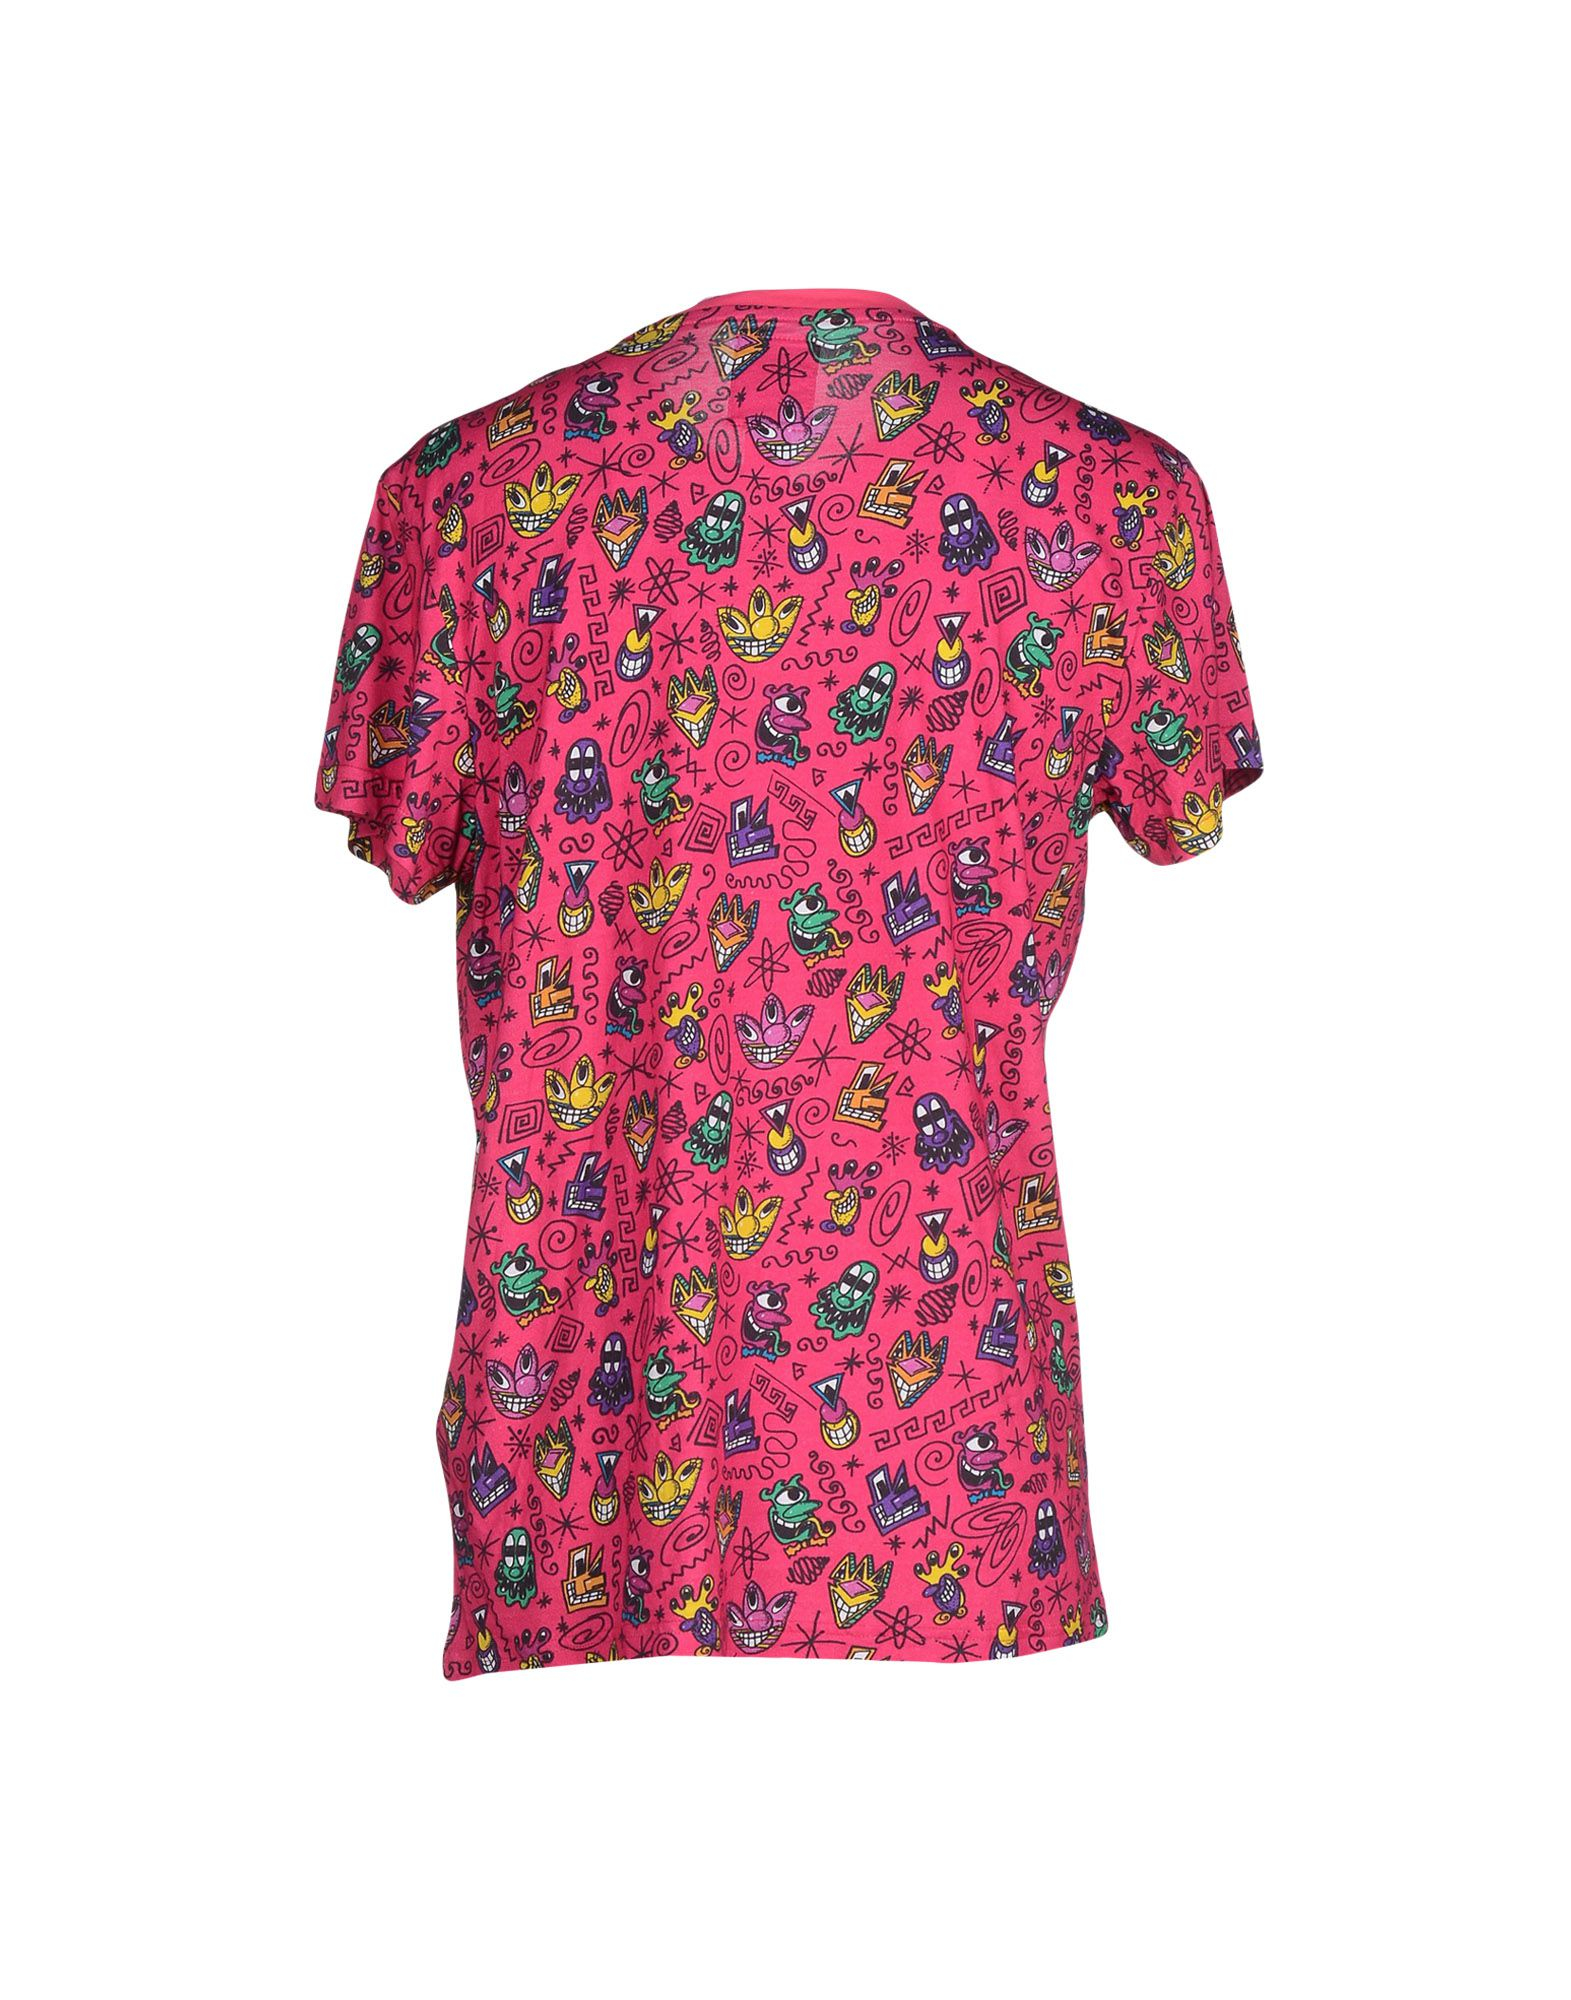 Jeremy scott for adidas t shirt in pink for men lyst for Adidas custom t shirts